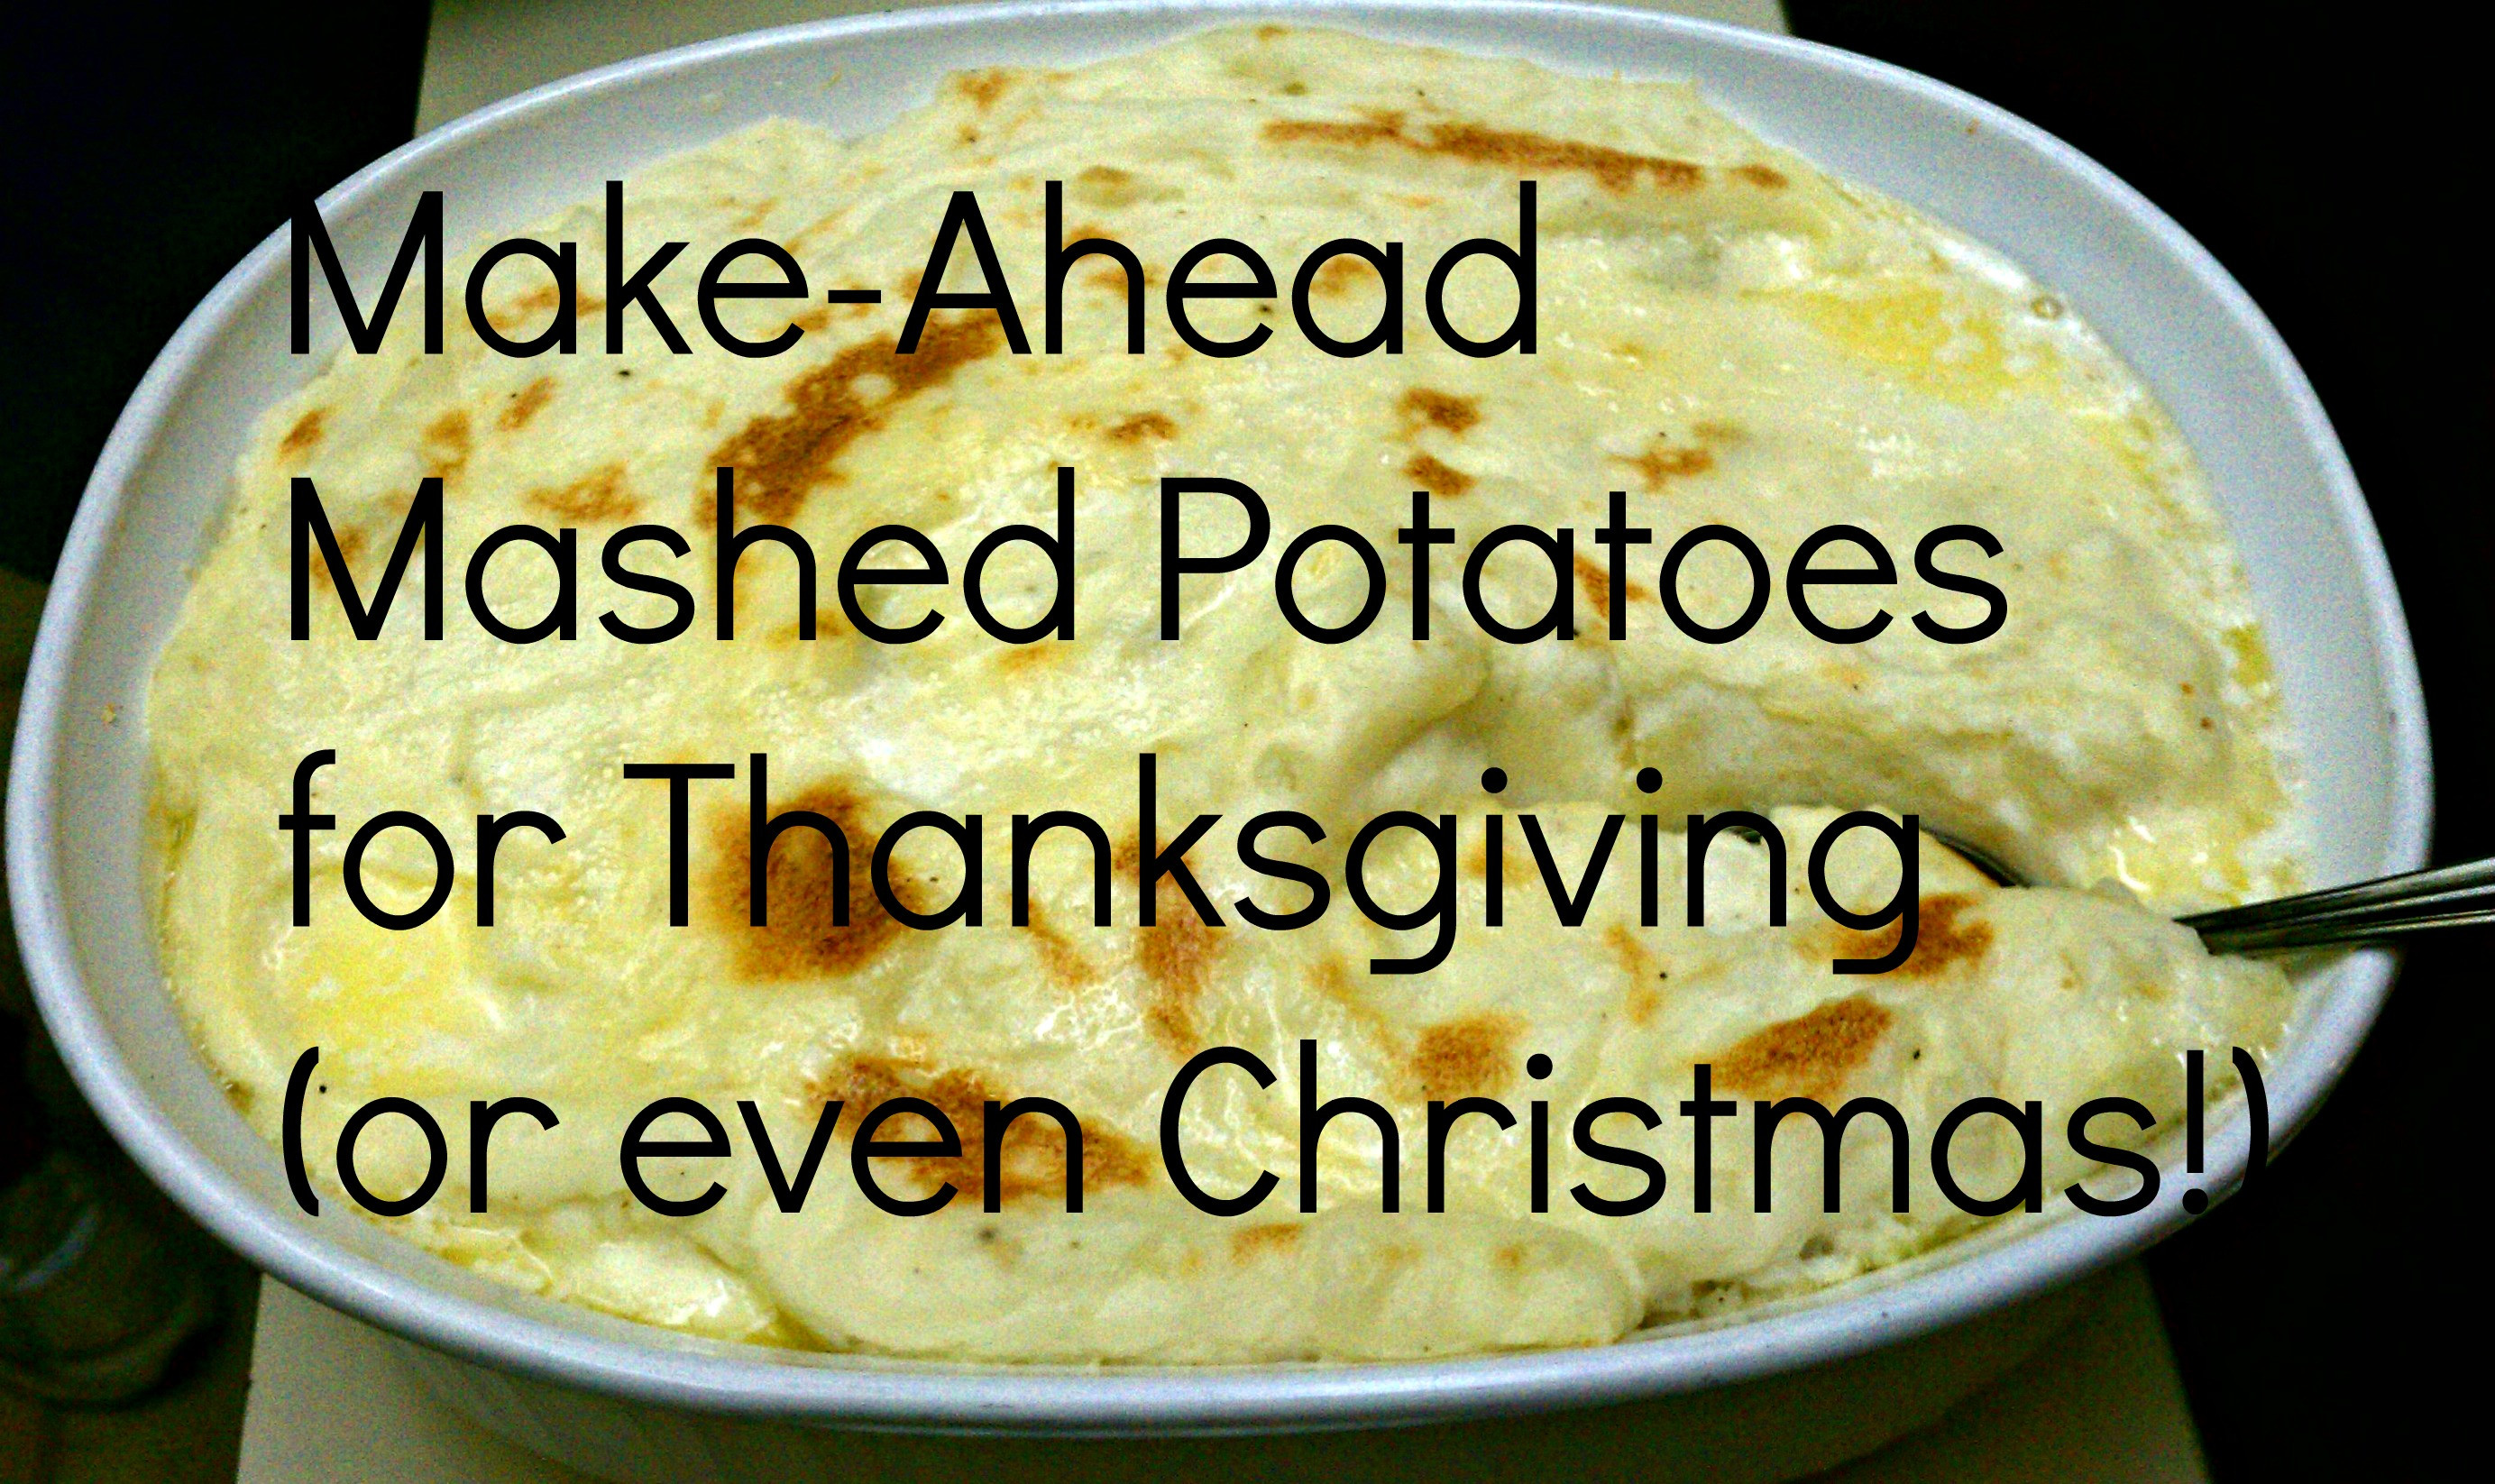 Make Ahead Mashed Potatoes Thanksgiving  How To Freeze Mashed Potatoes Now For Thanksgiving